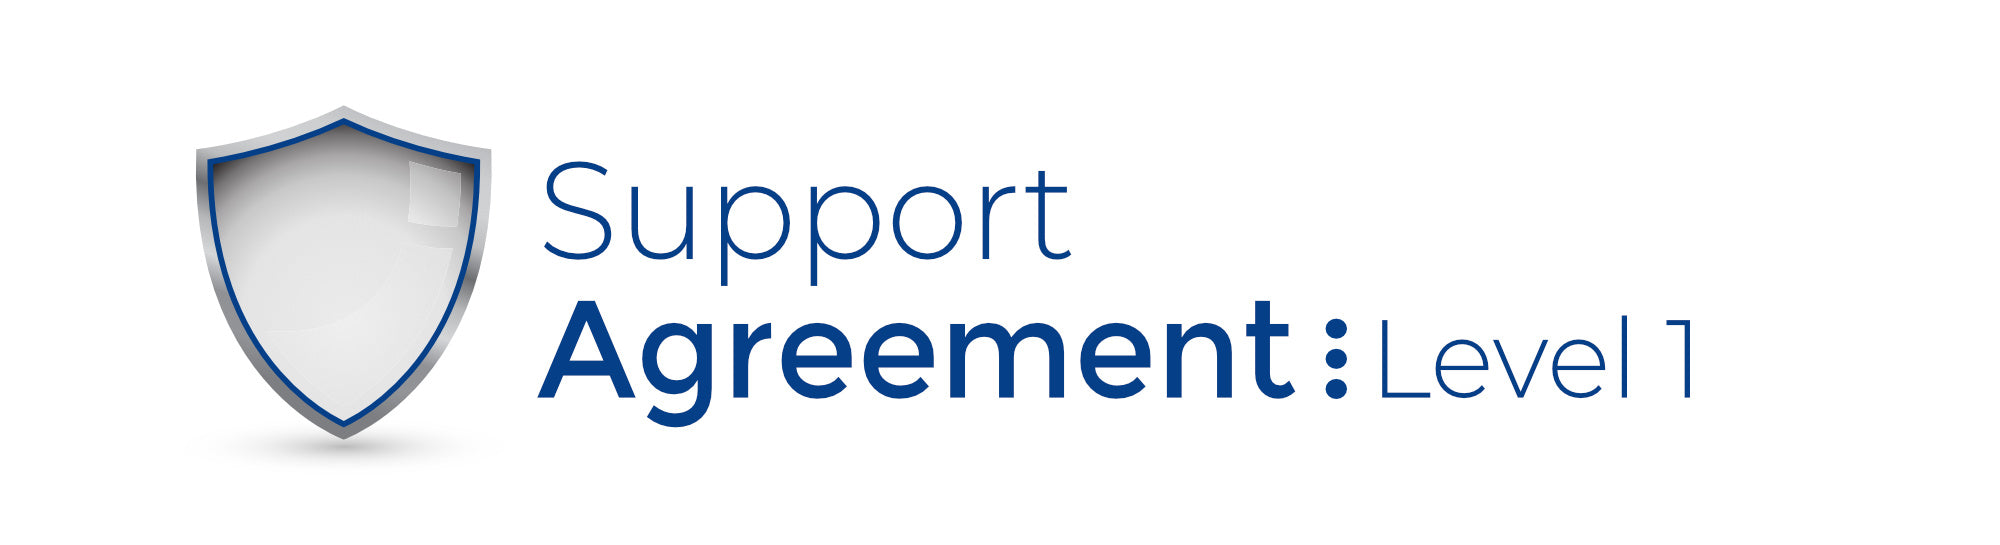 Support Agreement Level 1 - (12 Programming Changes Per Year) - Commtel Shop